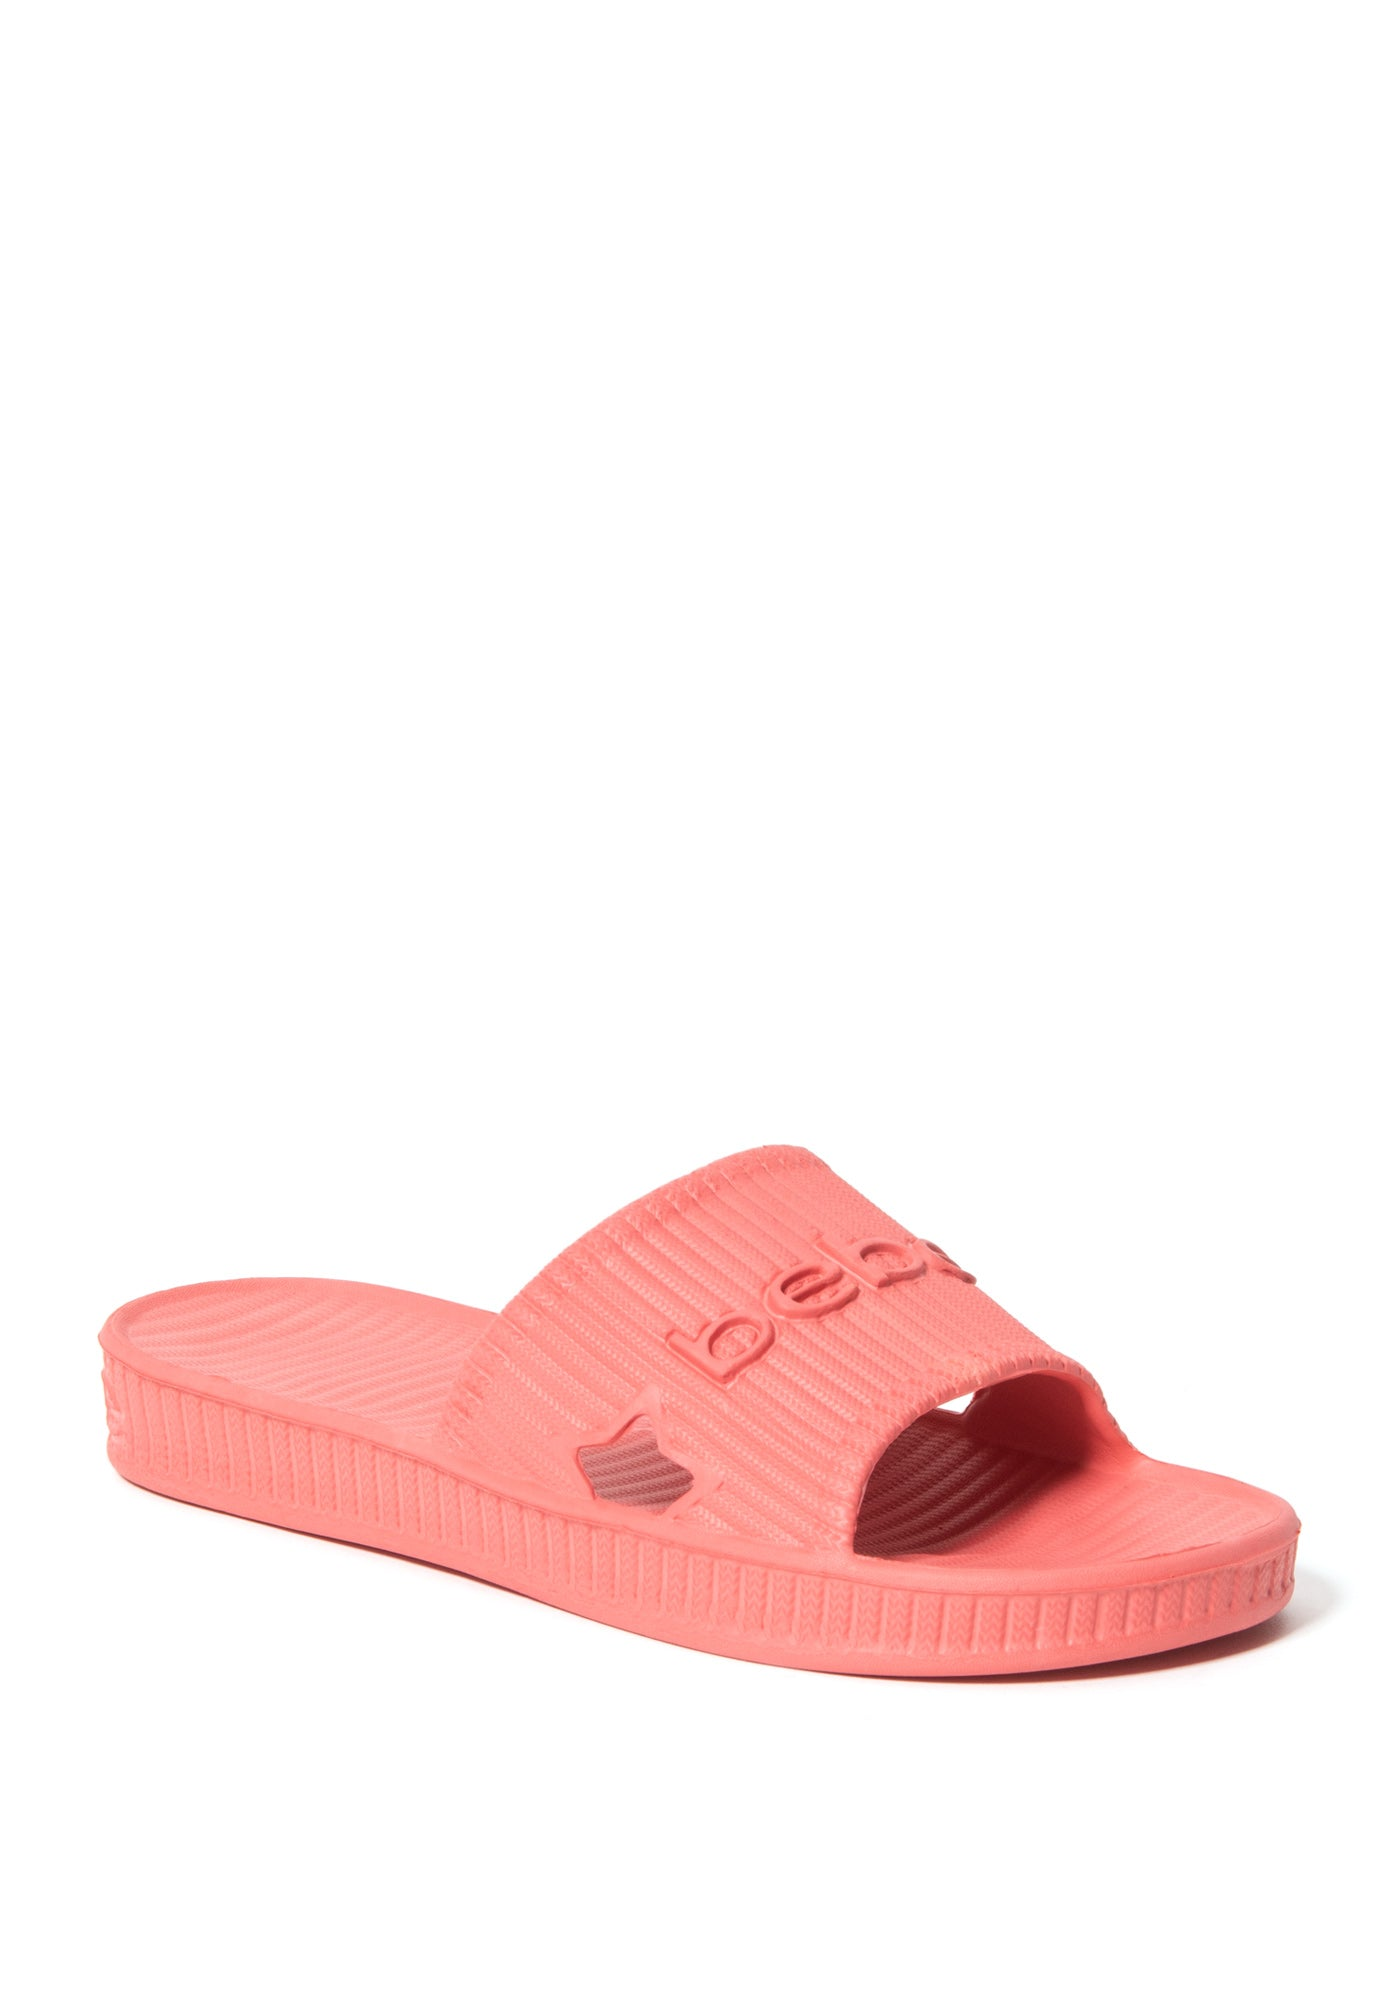 Bebe Women's Craze Logo Slides Shoe, Size 6 in Coral O Synthetic